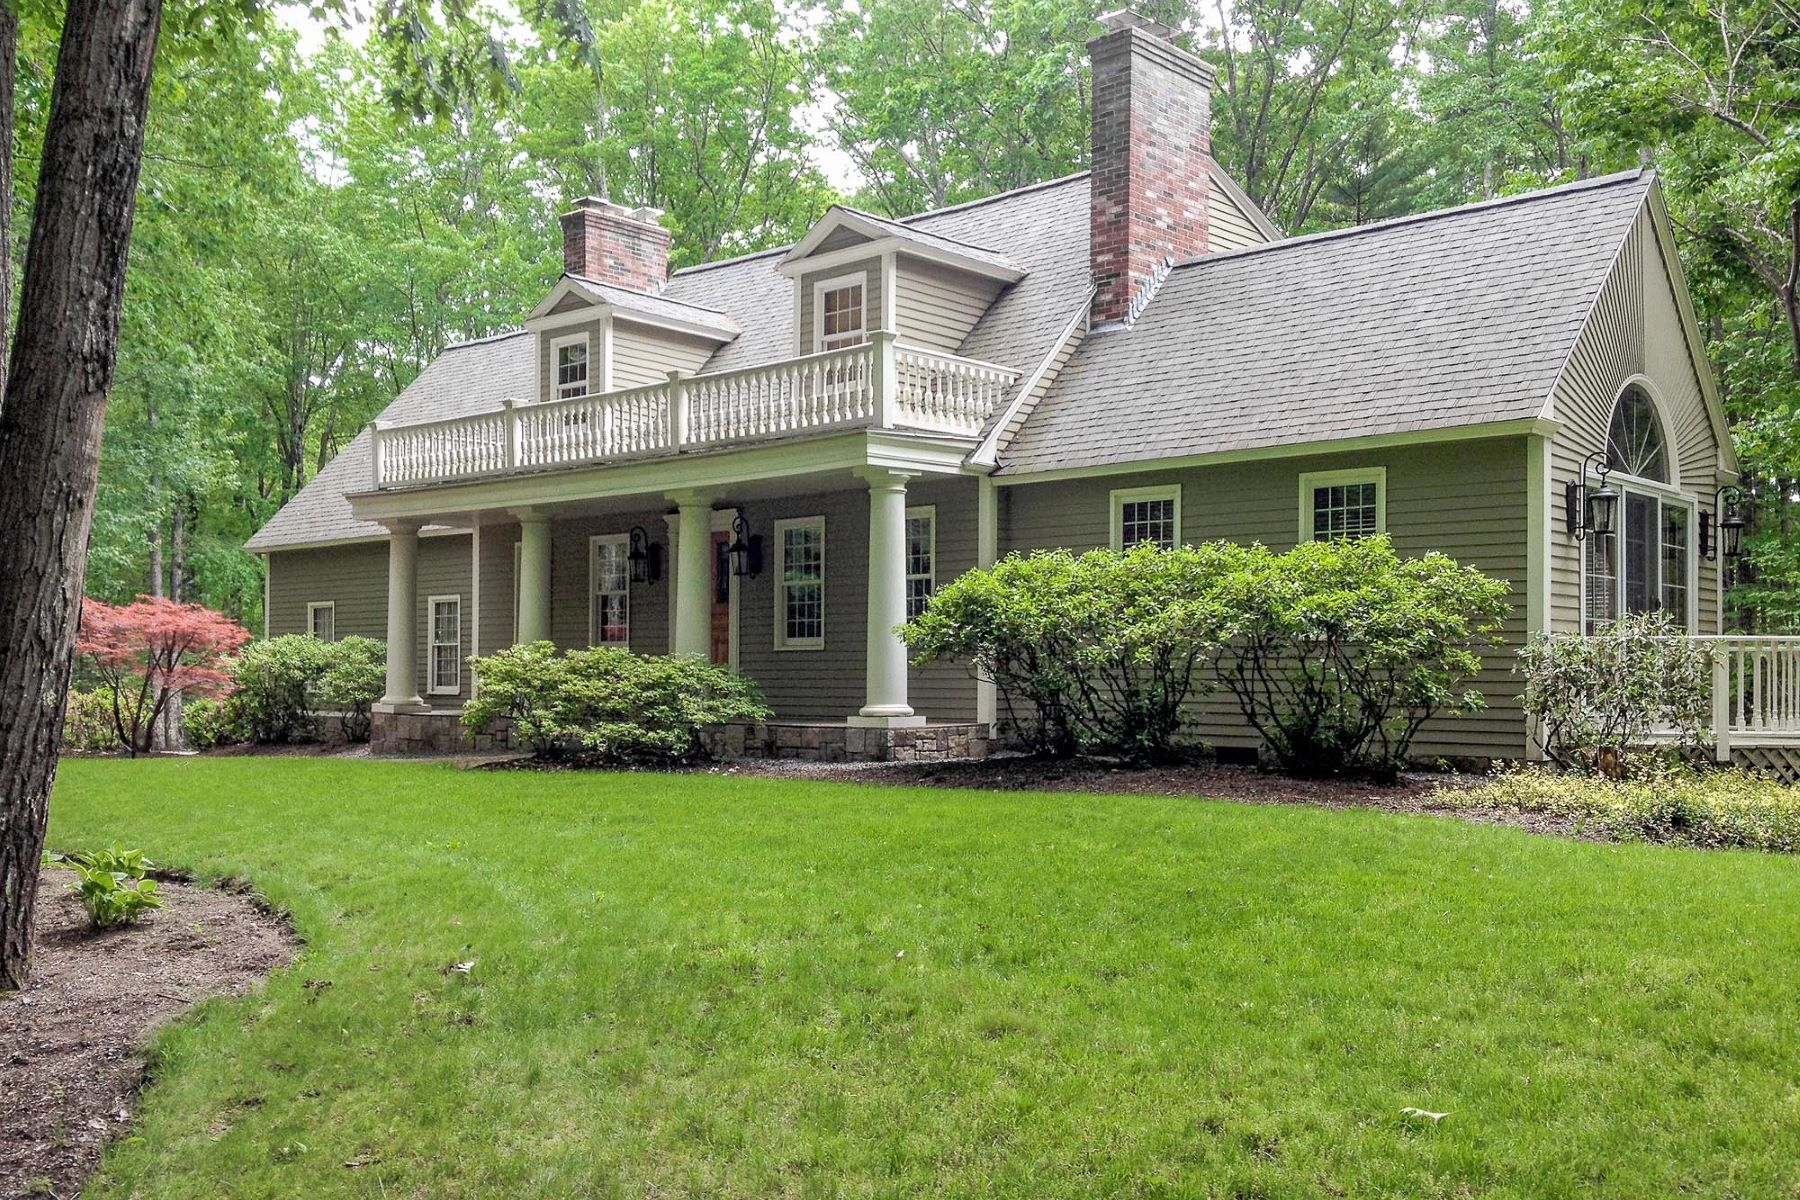 Single Family Homes for Sale at Abounding in Character & Quality 20 Old Farm Road Bedford, New Hampshire 03110 United States